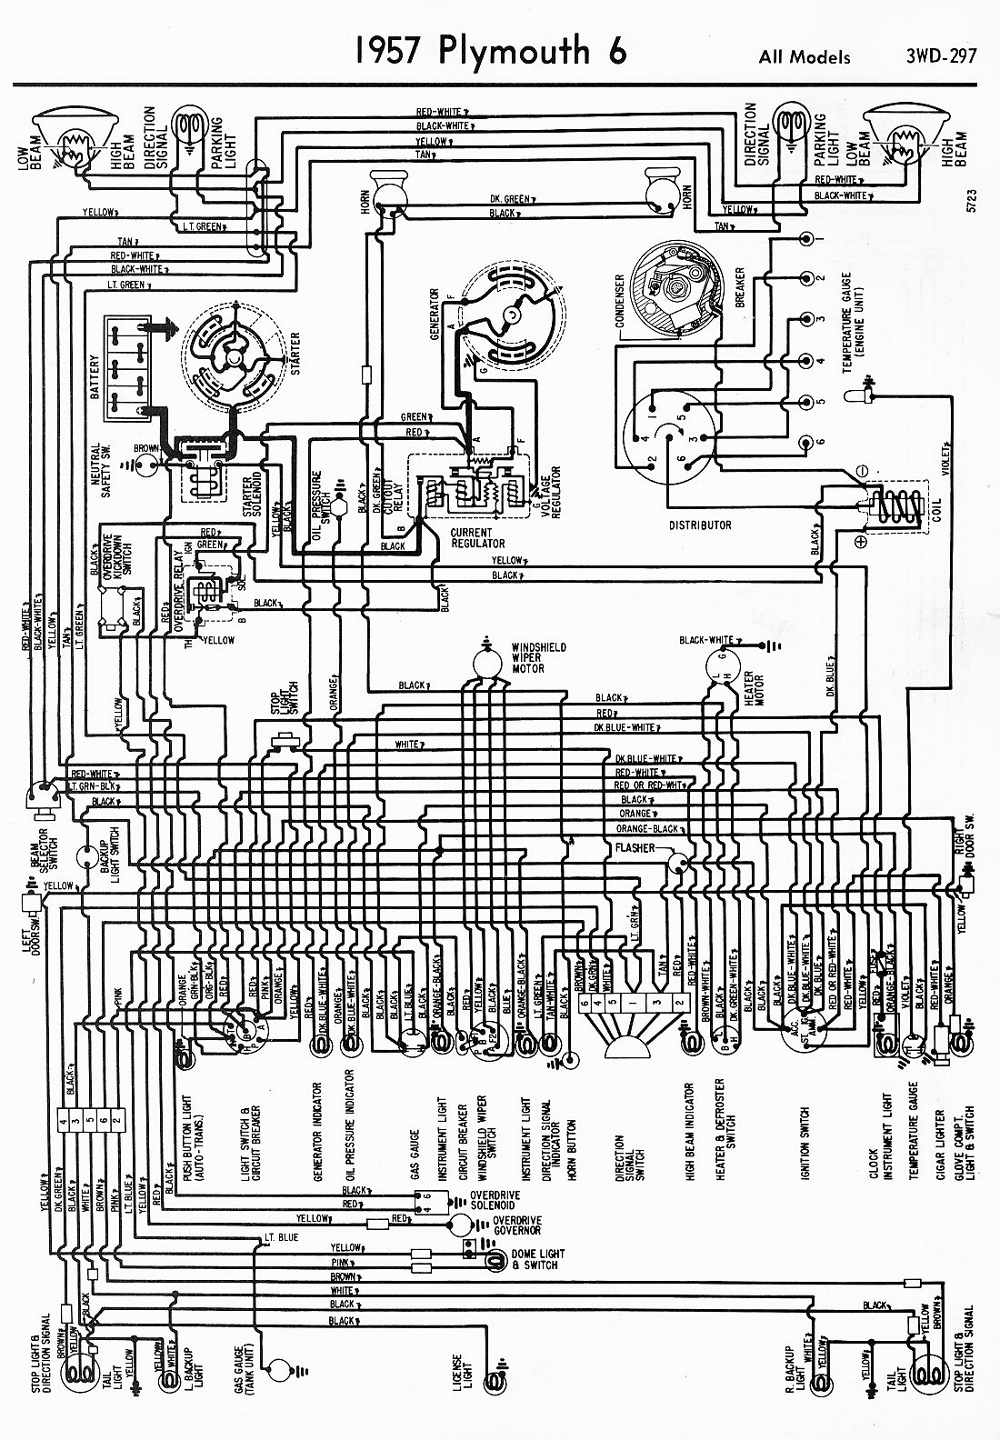 1957 Cadillac Distributor Wiring Diagram Web About 1956 Harness Diagrams 911 Plymouth 6 All Models Rh Wiringdiagrams911 Blogspot Com 1965 2003